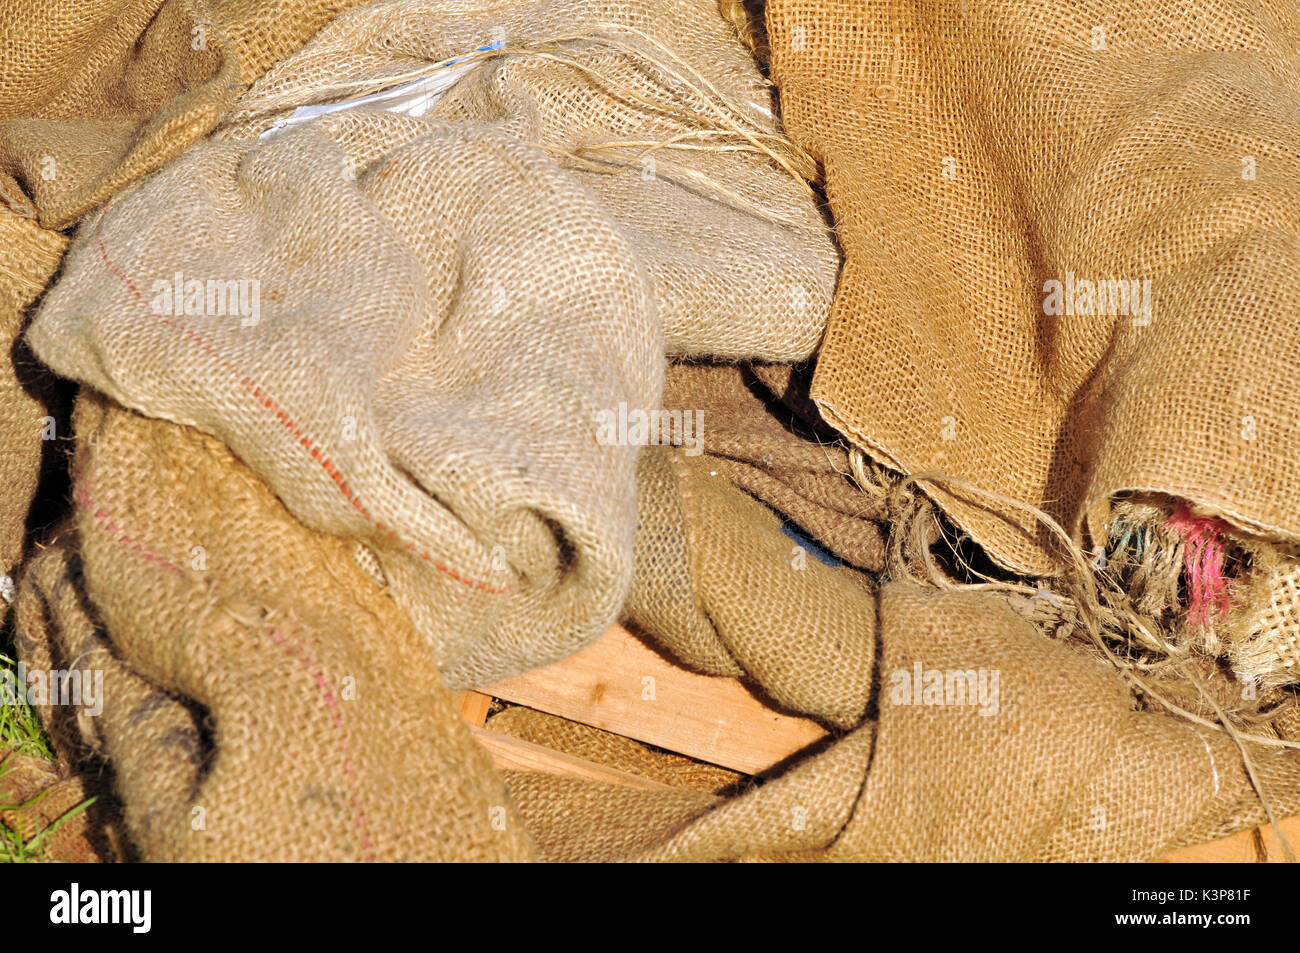 Hession  sacking sacks thick coarse materials for packaging and storage of goods airflow and porous - Stock Image